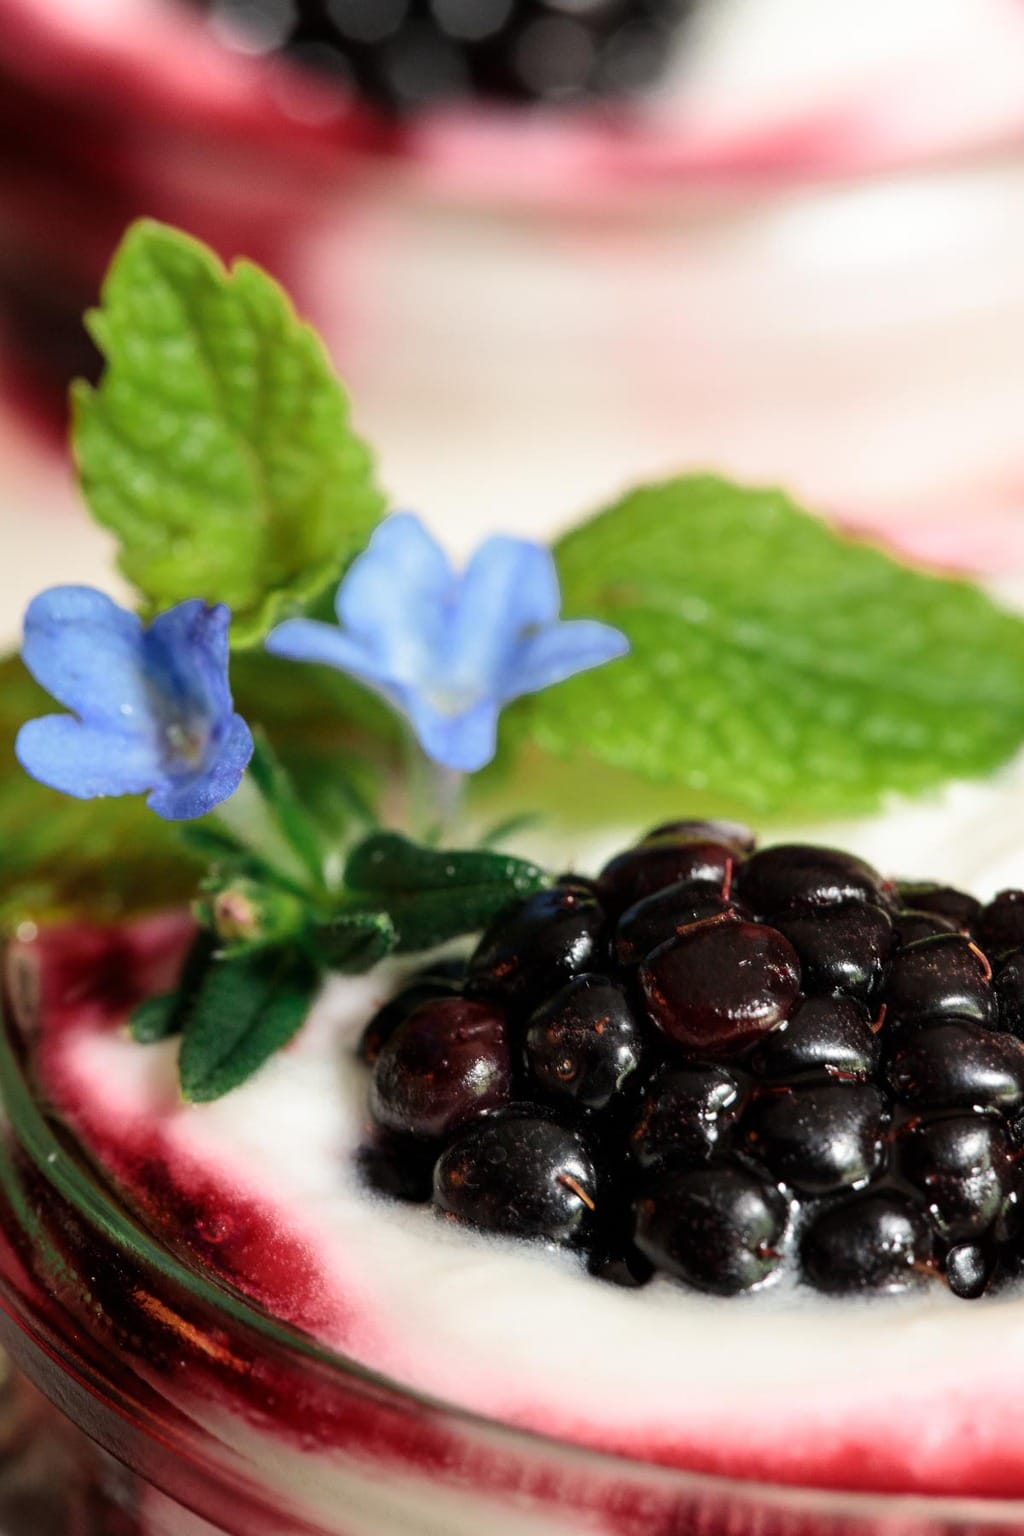 Extreme closeup photo of the top of an Irish Blackberry Fool garnished with fresh mint and decorative wildflowers.